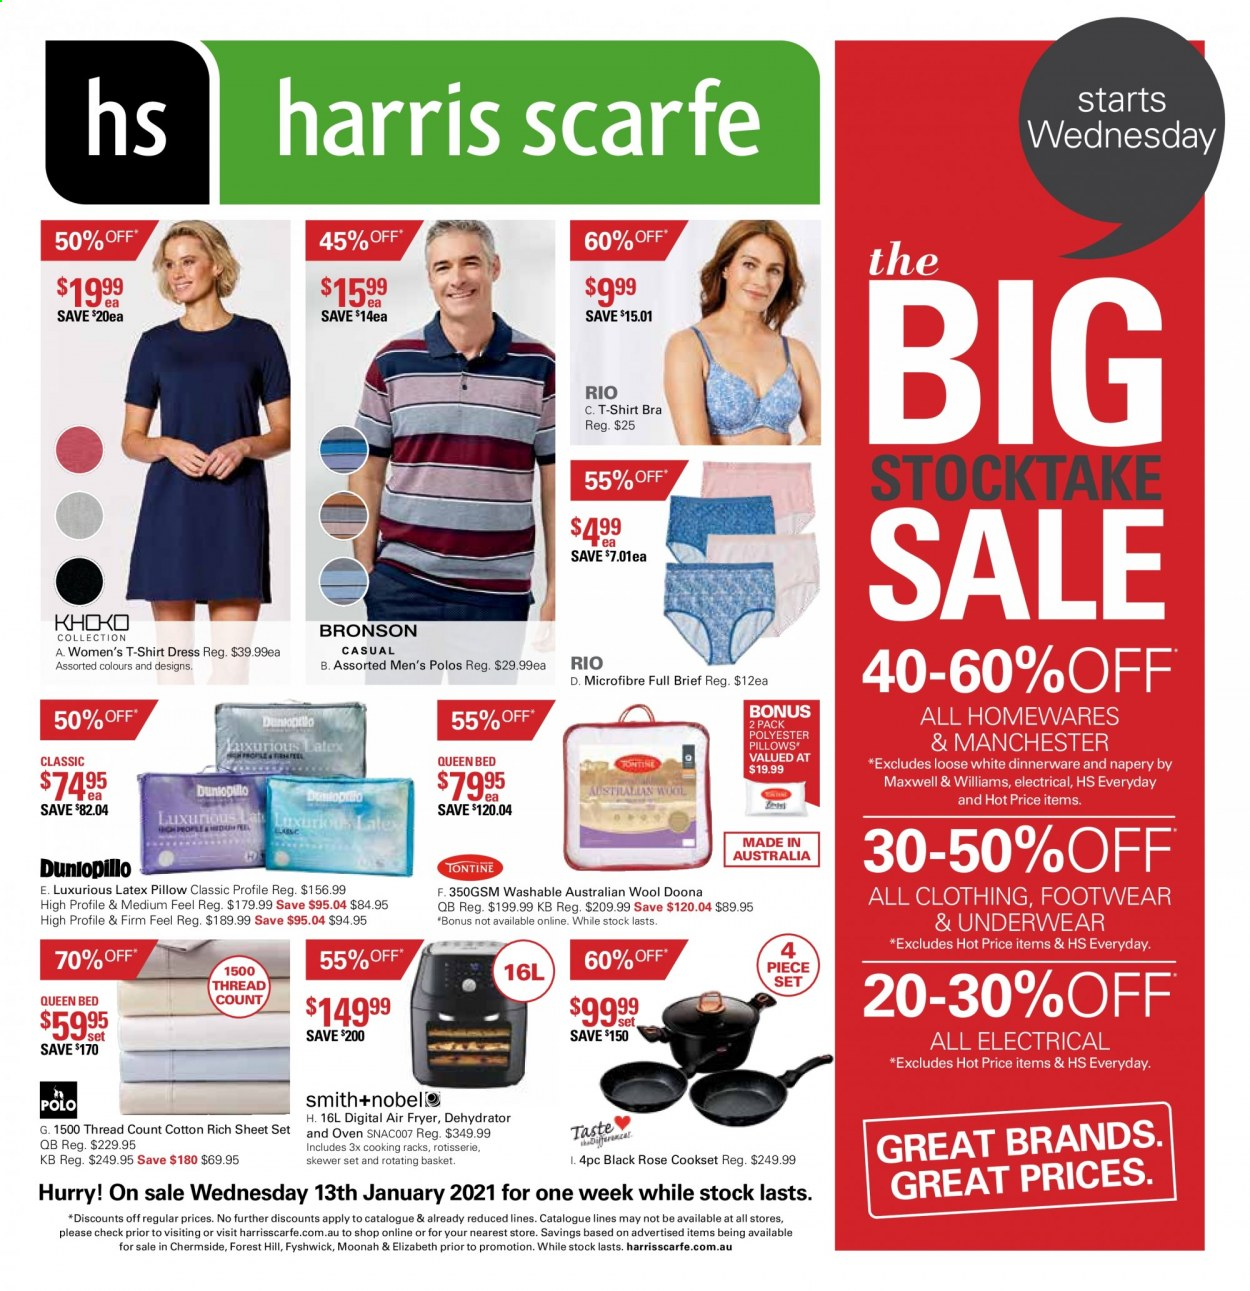 Harris Scarfe Catalogue - Sales products - basket, dinnerware set, sheet, pillow, fryer, air fryer, dehydrator, dress, shirt, t-shirt, bra, underwear, bed. Page 1.